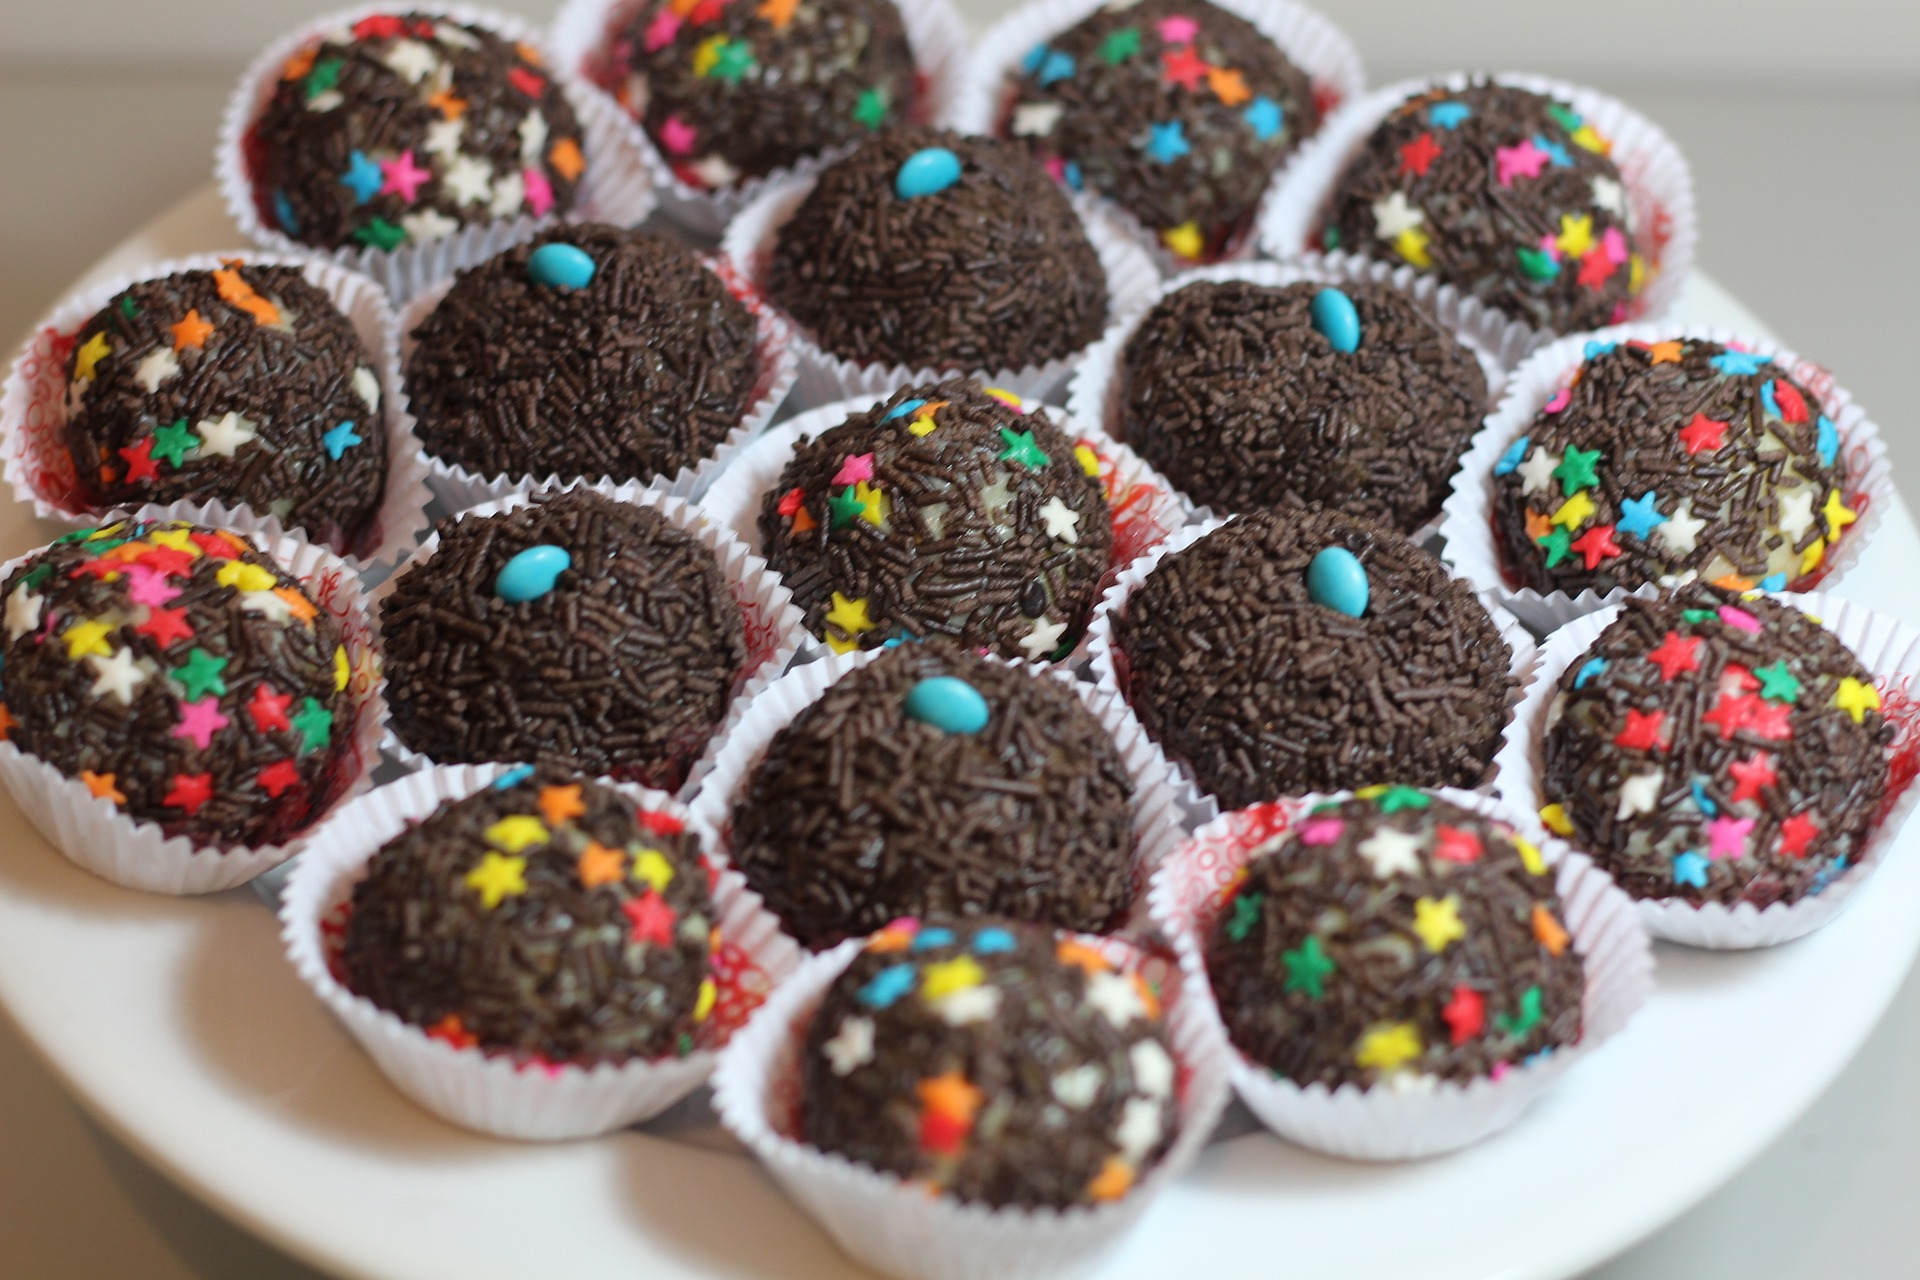 The bite-size Brazilian chocolate dessert is traditionally coated in chocolate sprinkles, but can be topped with chopped nuts or shredded coconut too.